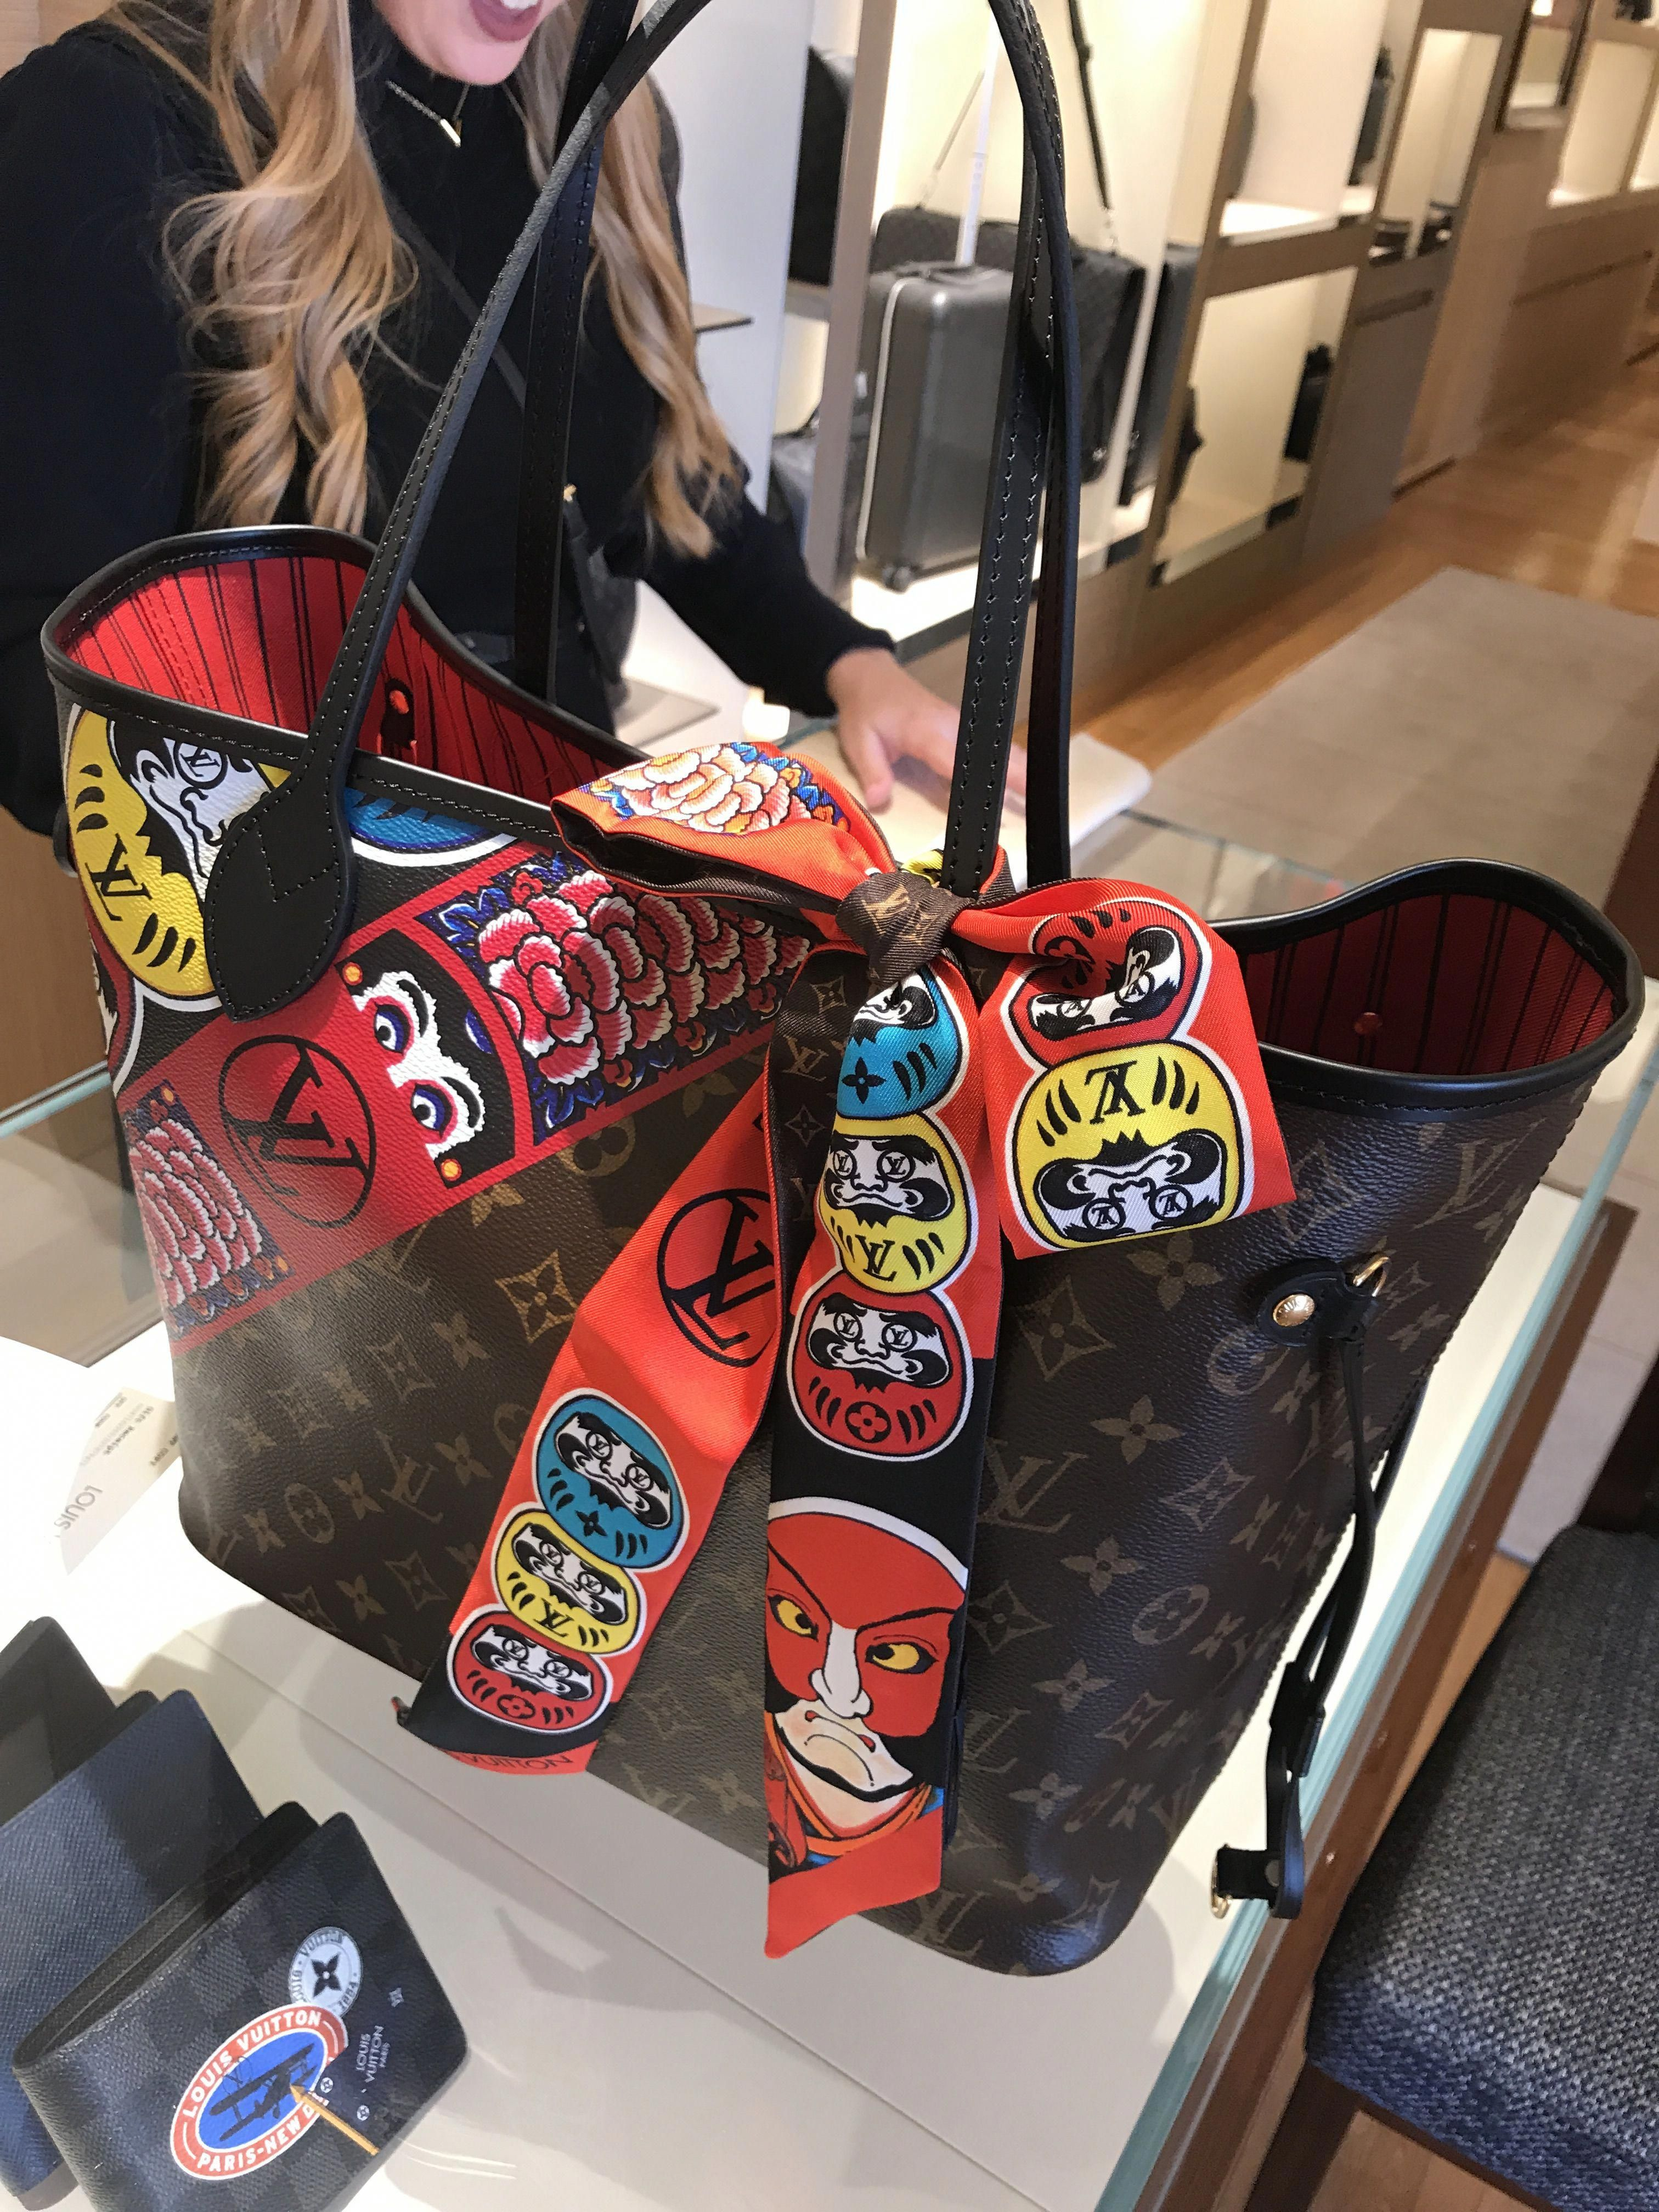 dcf0cc3c523d Louis Vuitton 2018 Cruise Collection. Kabuki Neverfull MM. The artwork is  amazing!  TheLouisVuittonbagsCollection  Louisvuittonhandbags